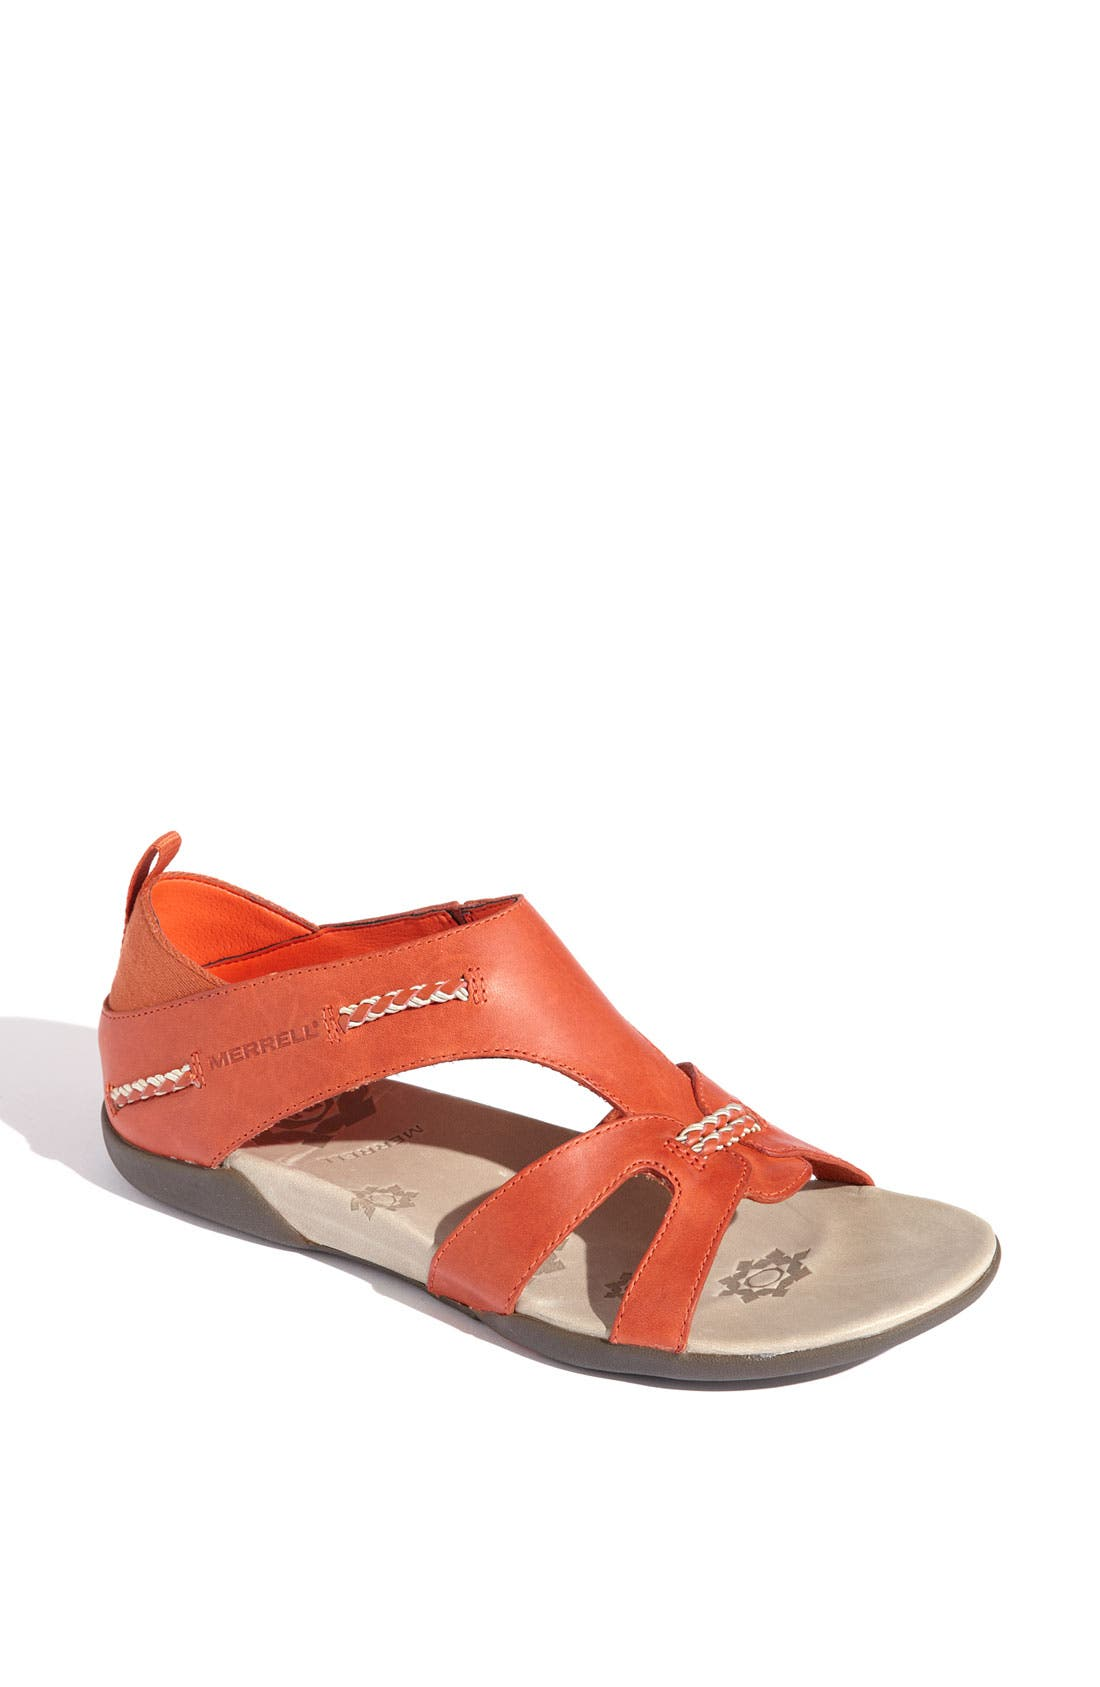 Alternate Image 1 Selected - Merrell 'Flaxen' Sandal